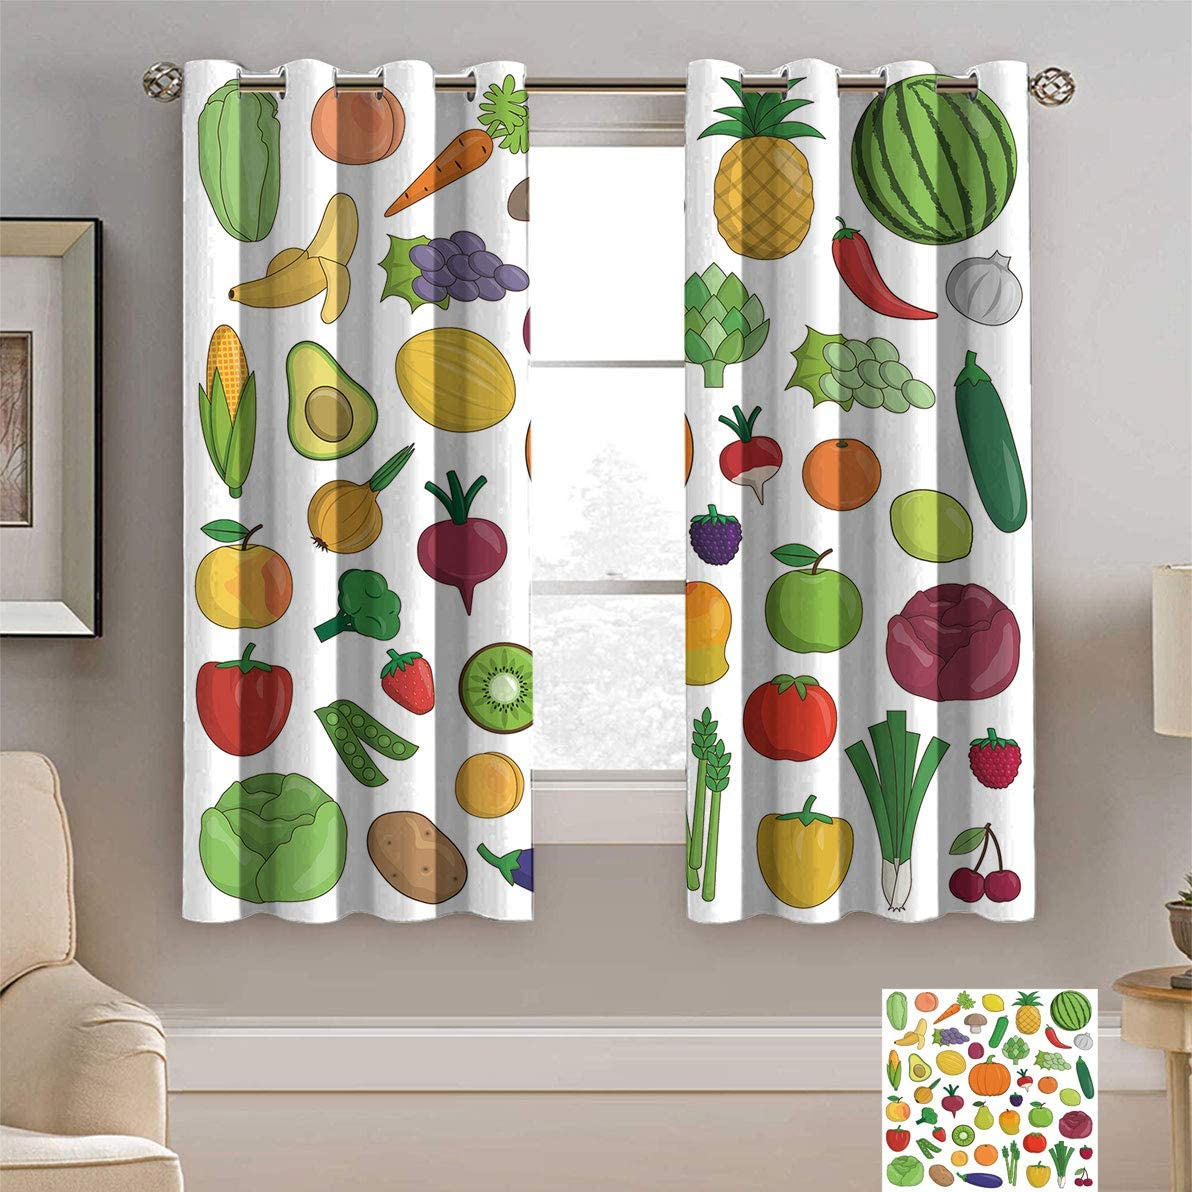 Alexdemo Fruit Decor 年間定番 Thermal Insulated Curtain 新着セール of Fr Collection